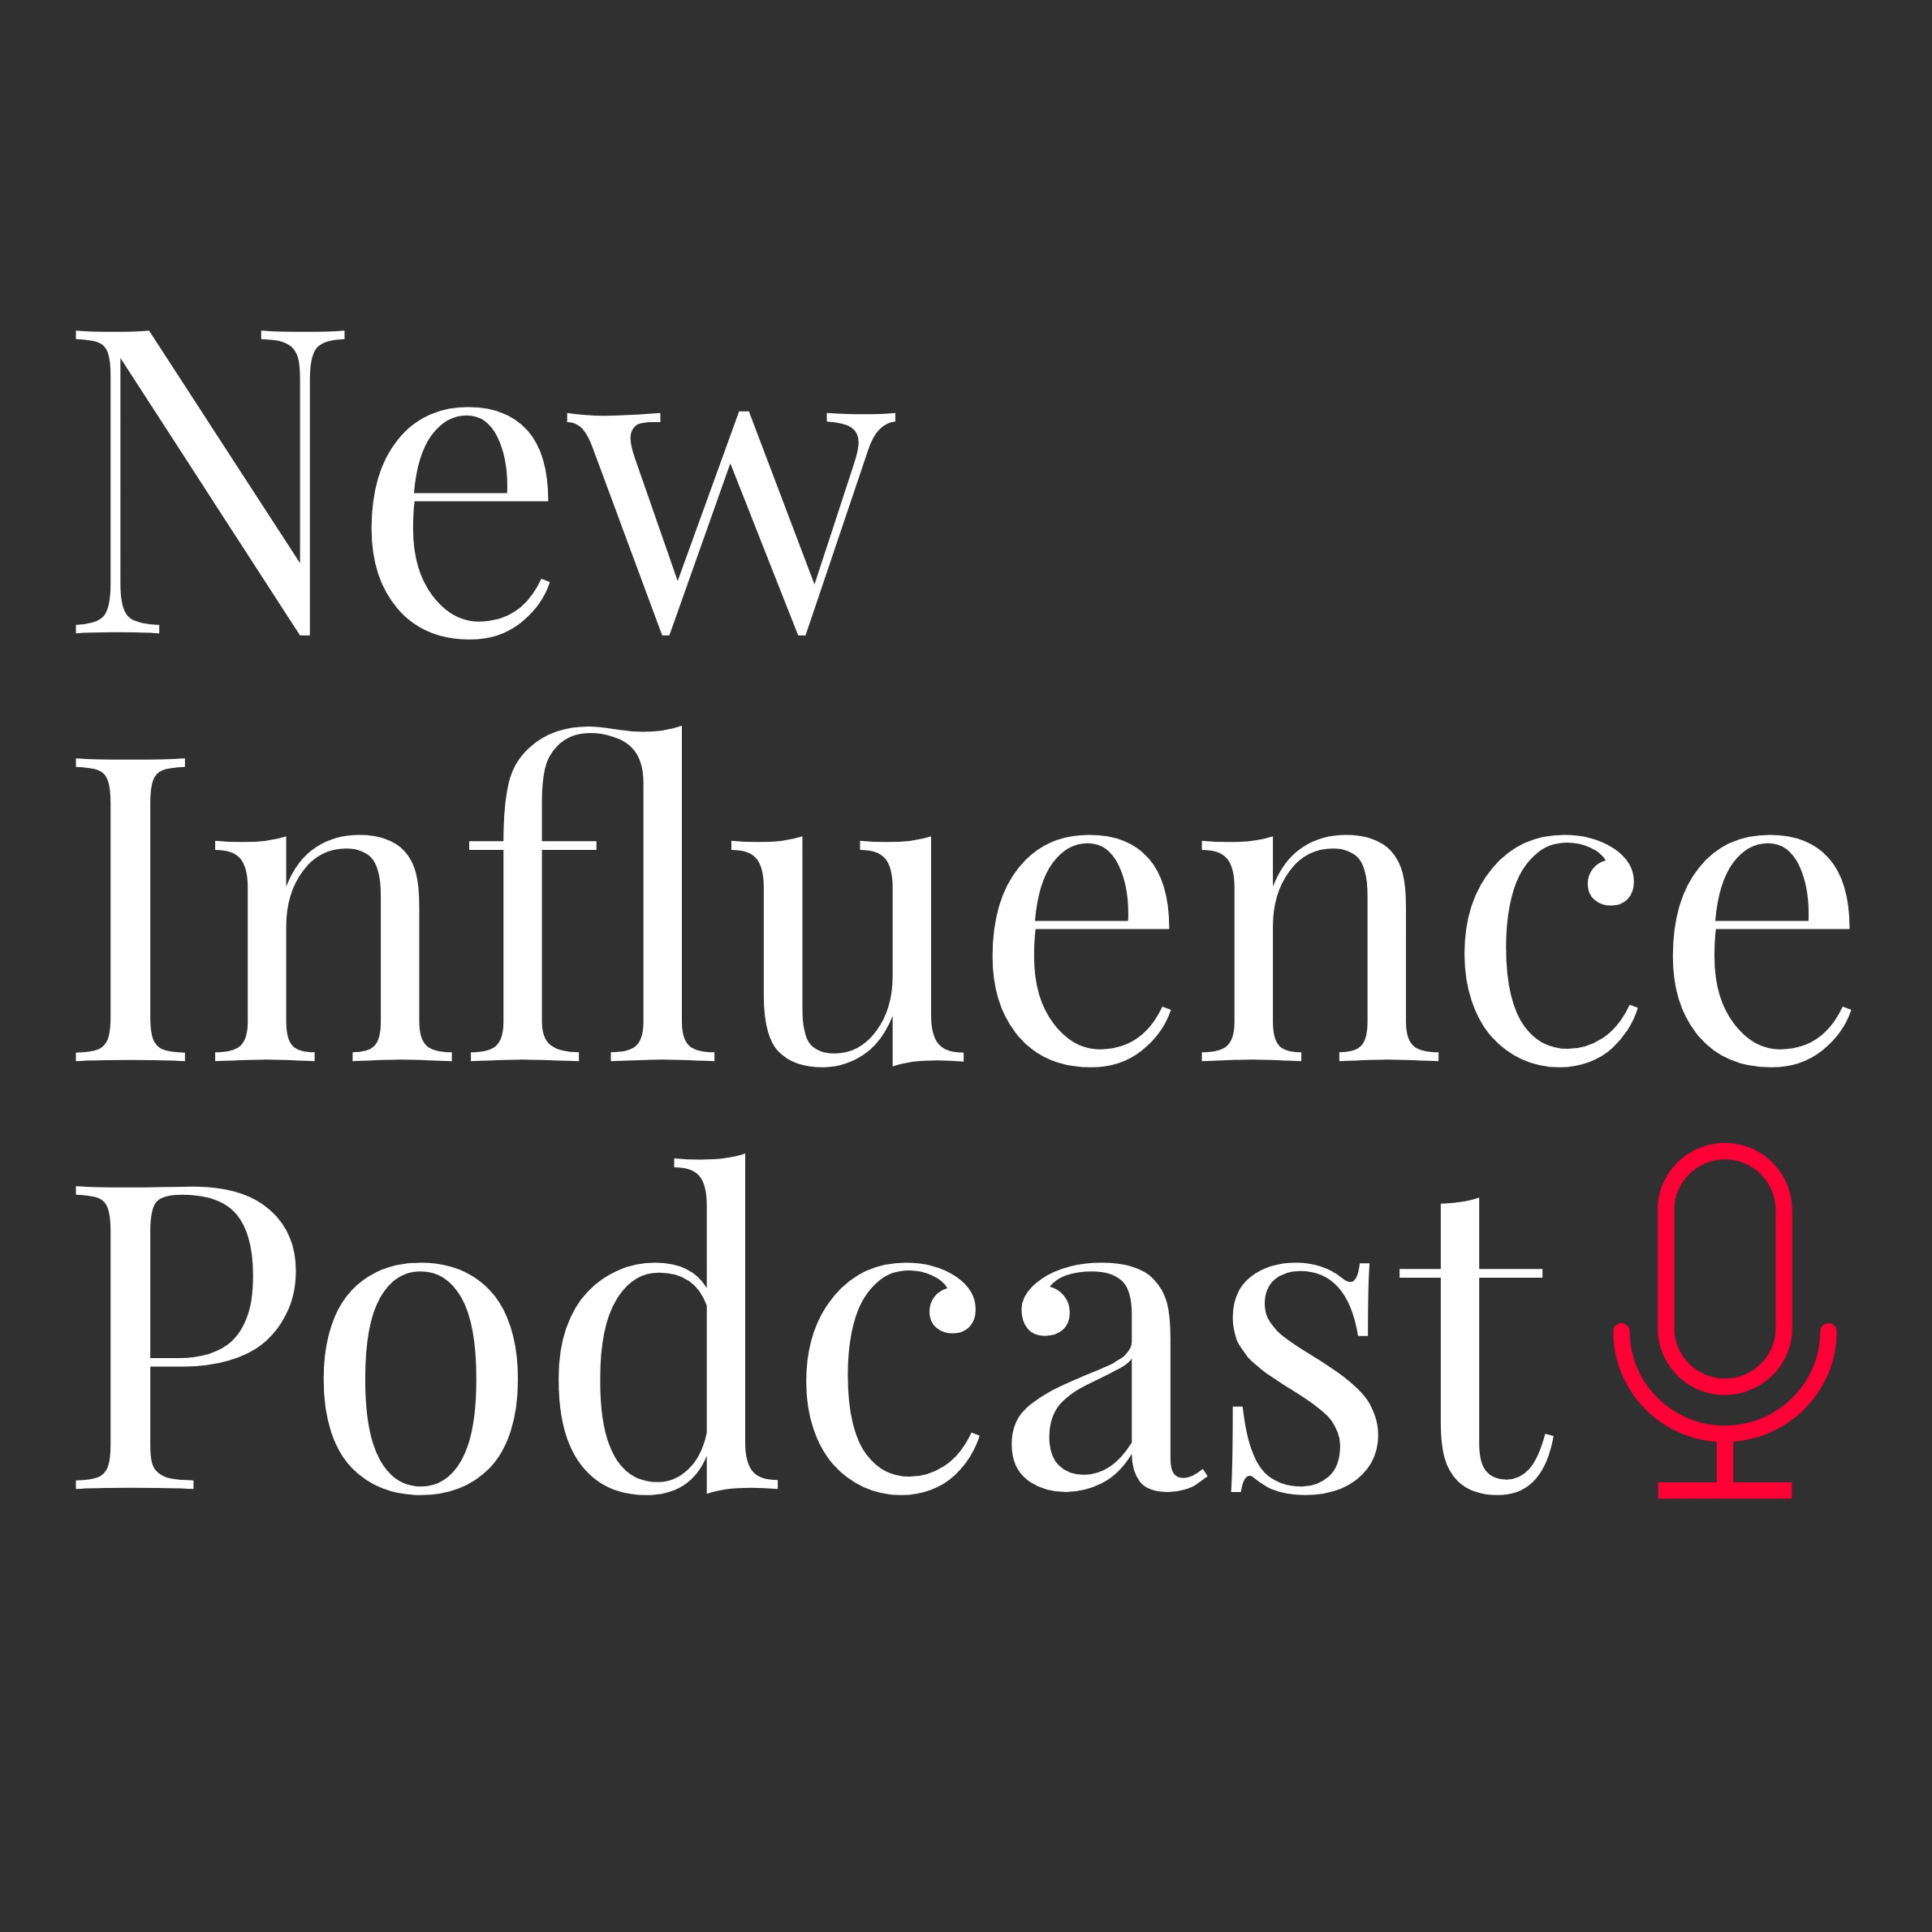 The New Influence Podcast